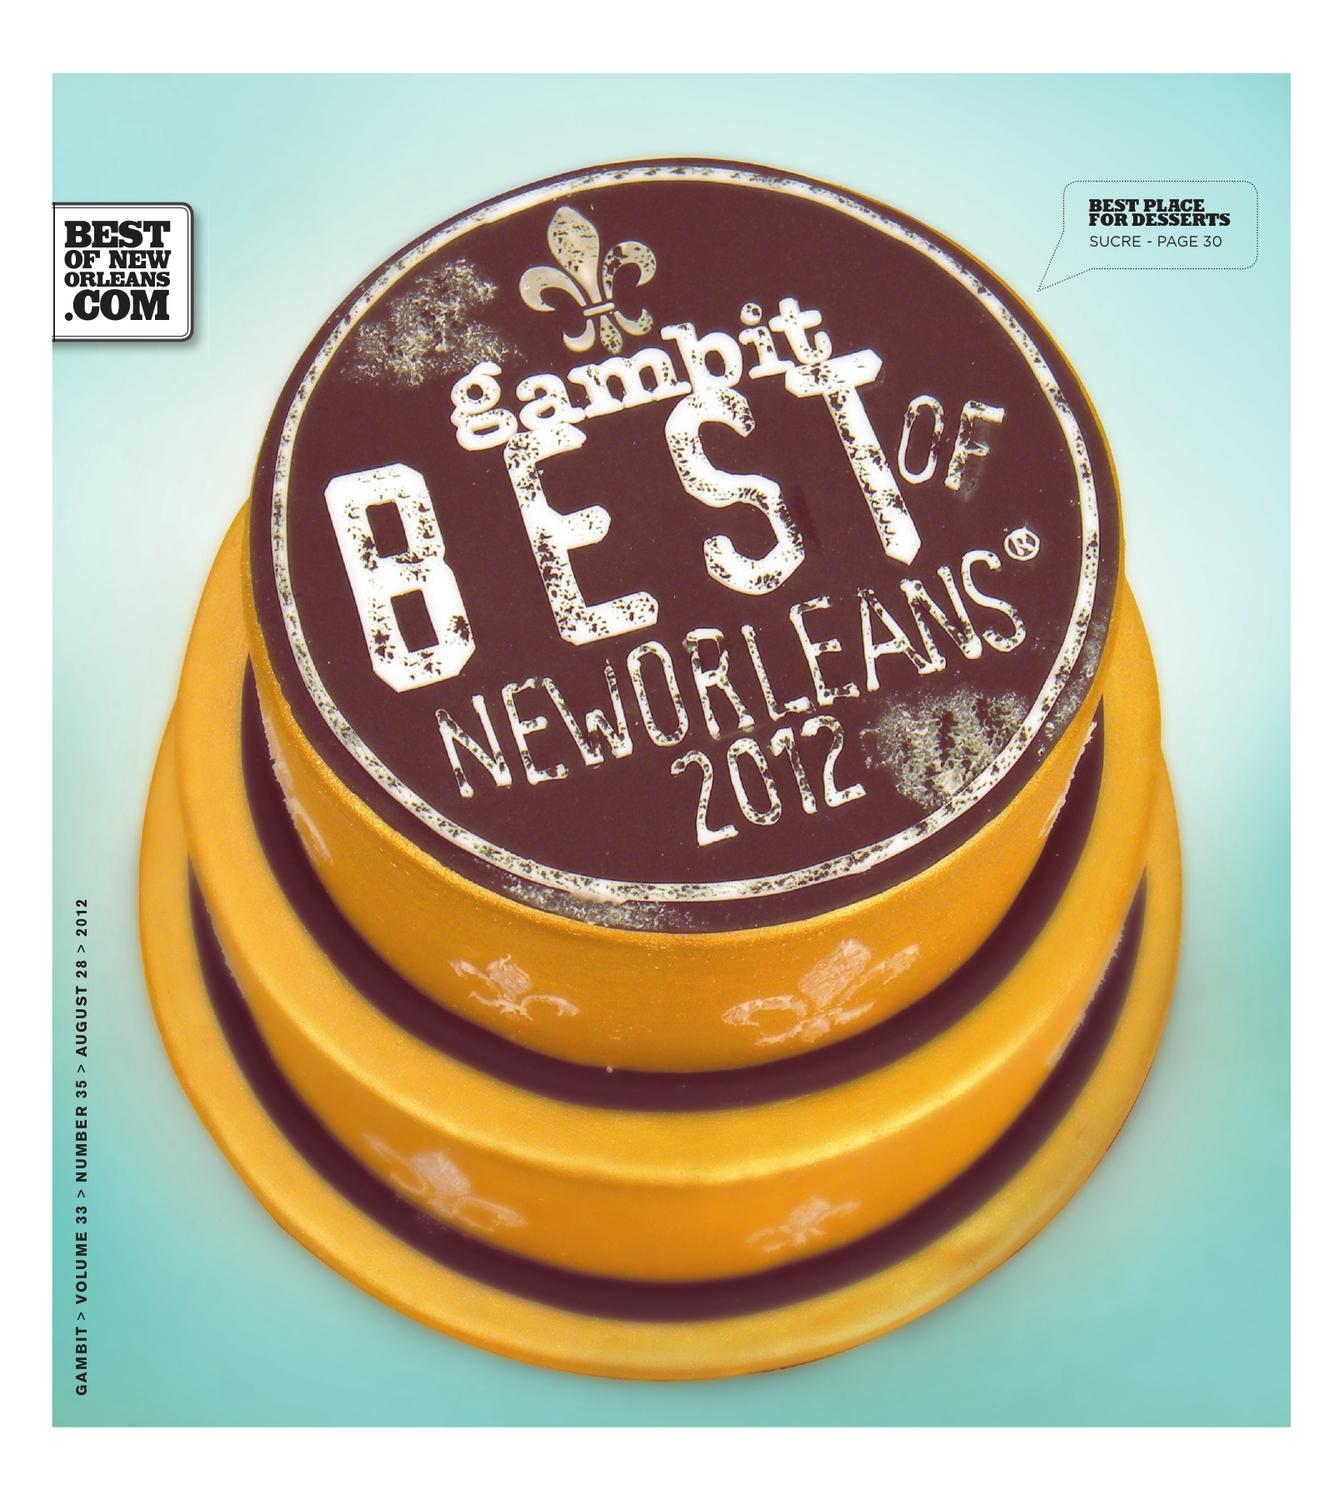 Best of new orleans 2012 by gambit new orleans issuu fandeluxe